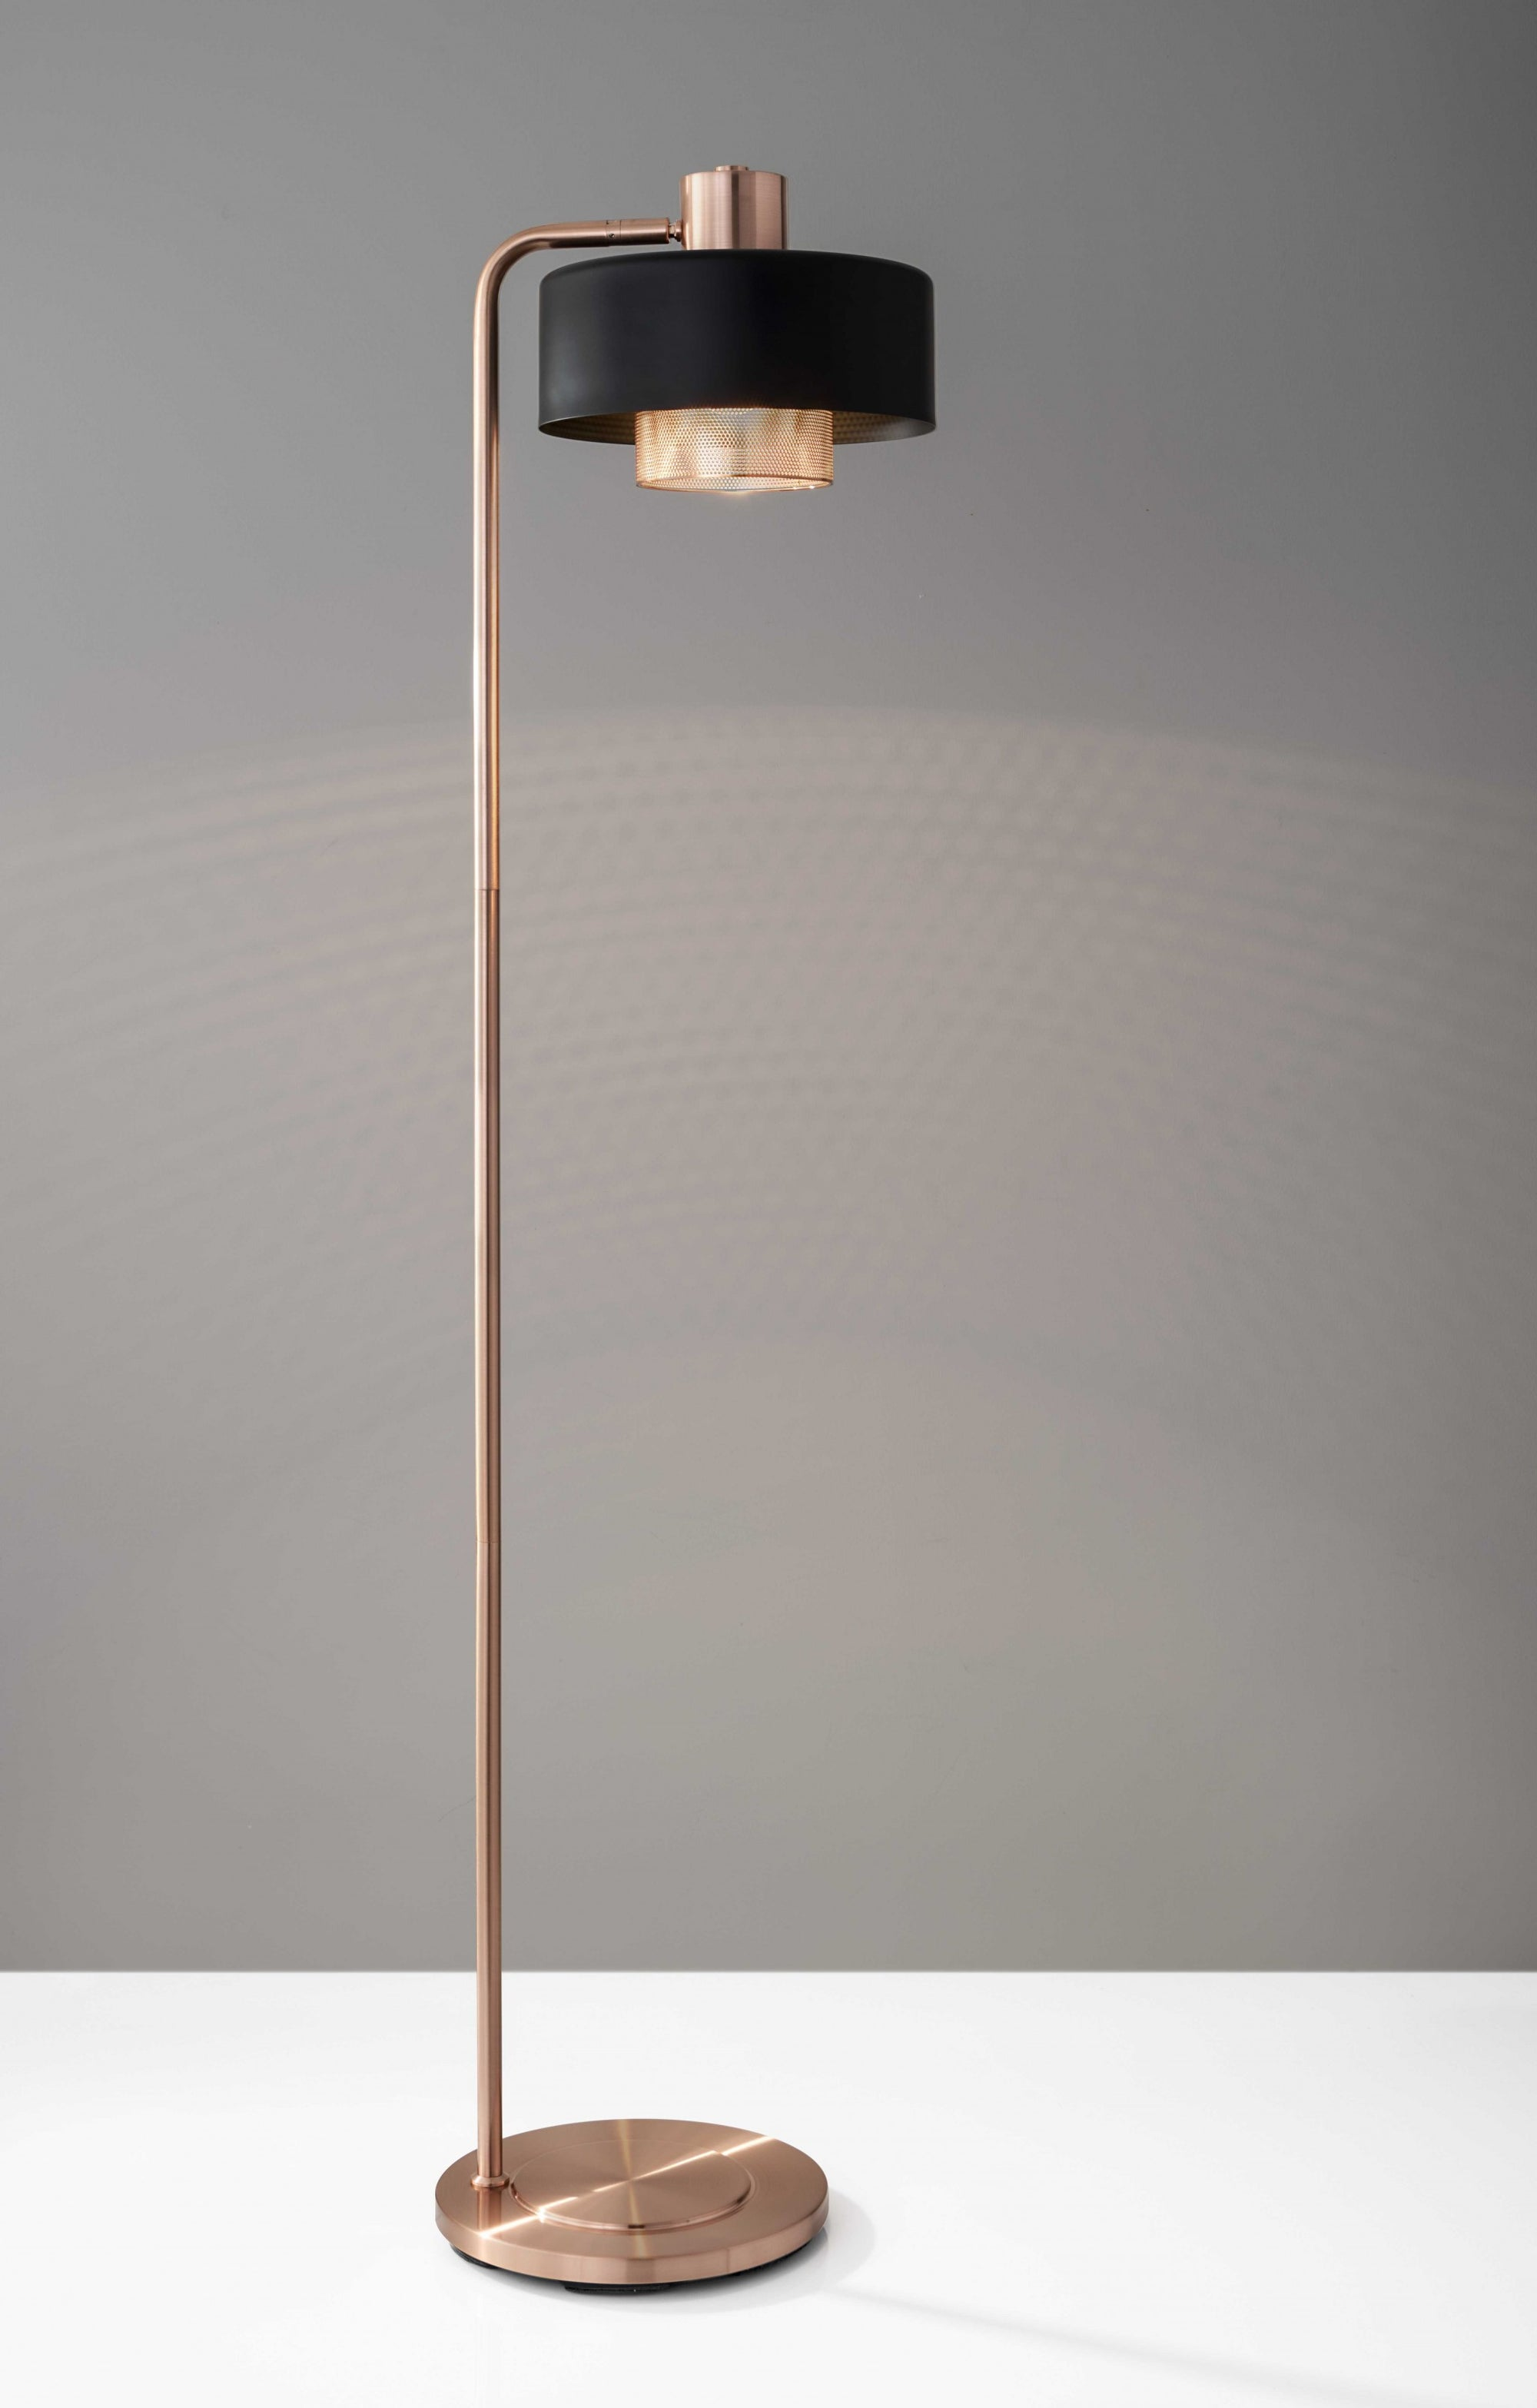 Copper Metal Floor Lamp With Contrasting Black Canopy Shade